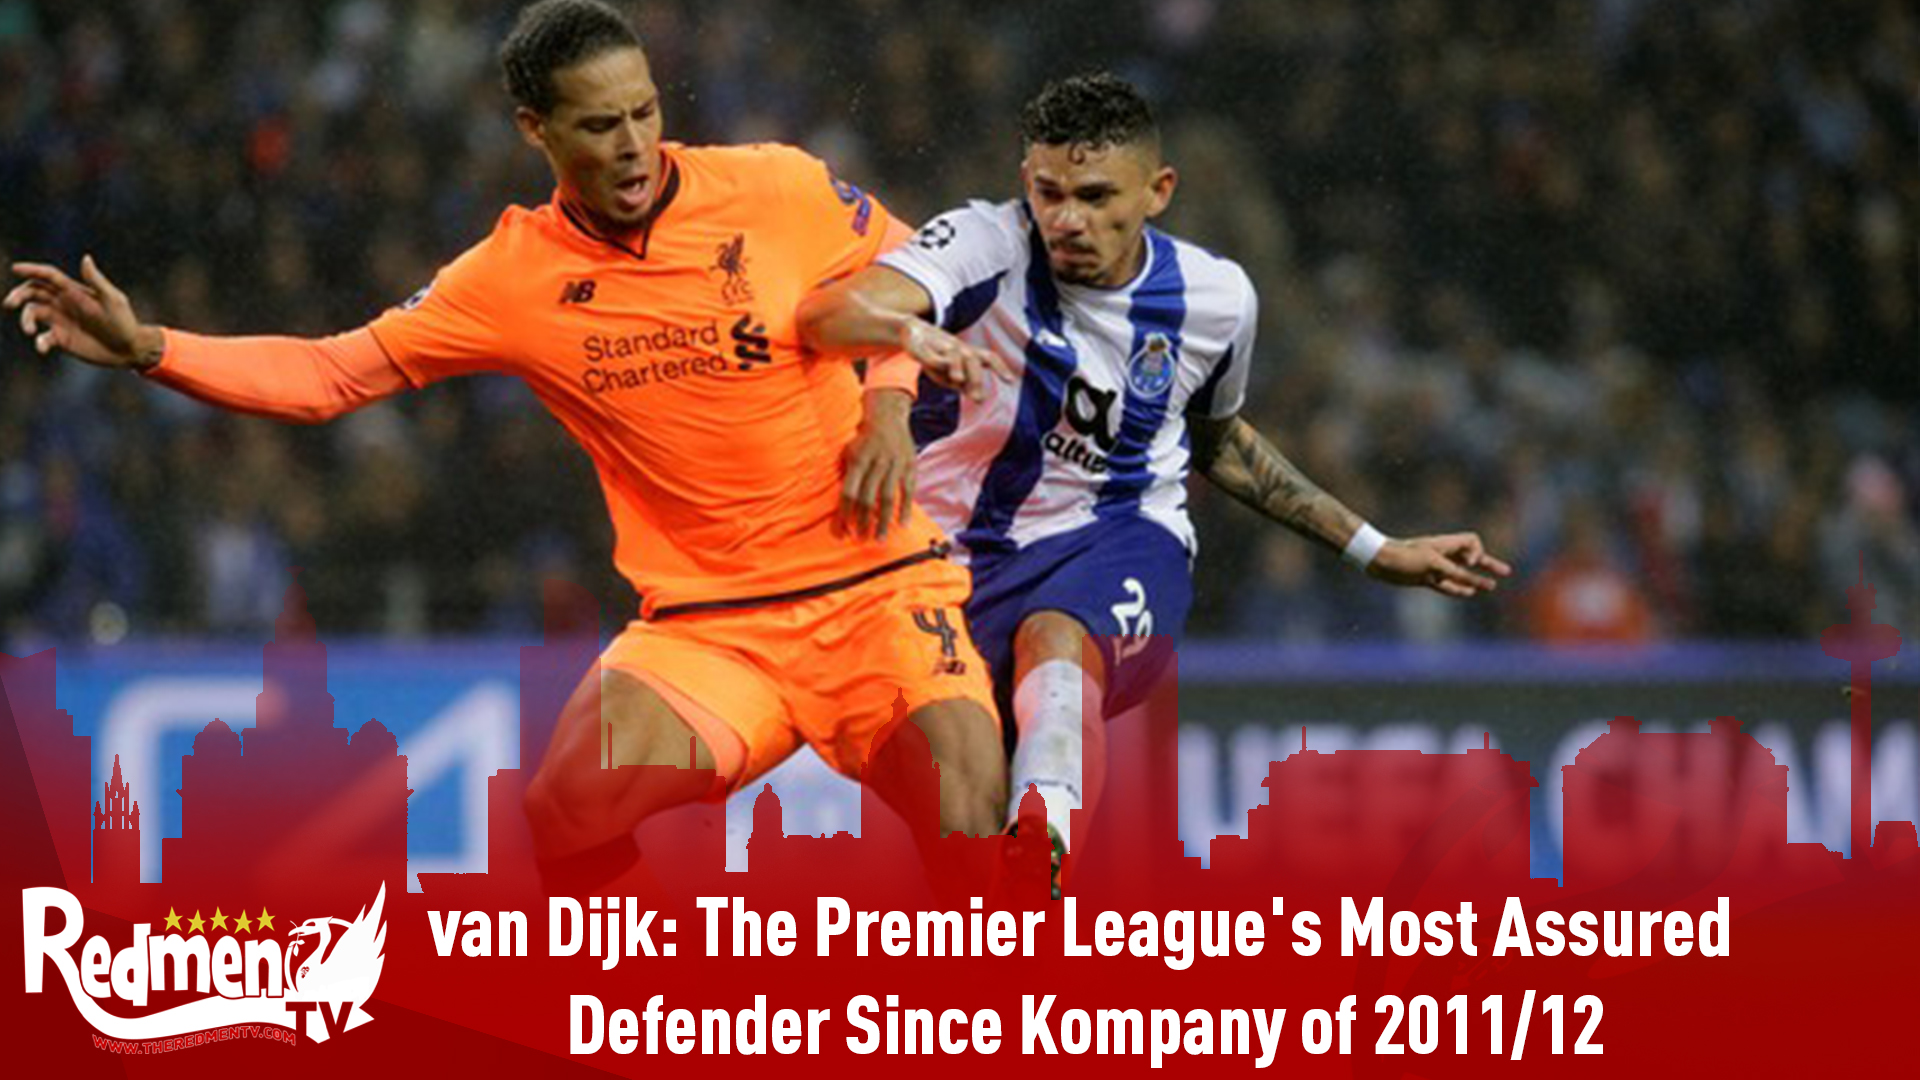 Virgil van Dijk: The Premier League's Most Assured Defender Since Vincent Kompany of 2011/12